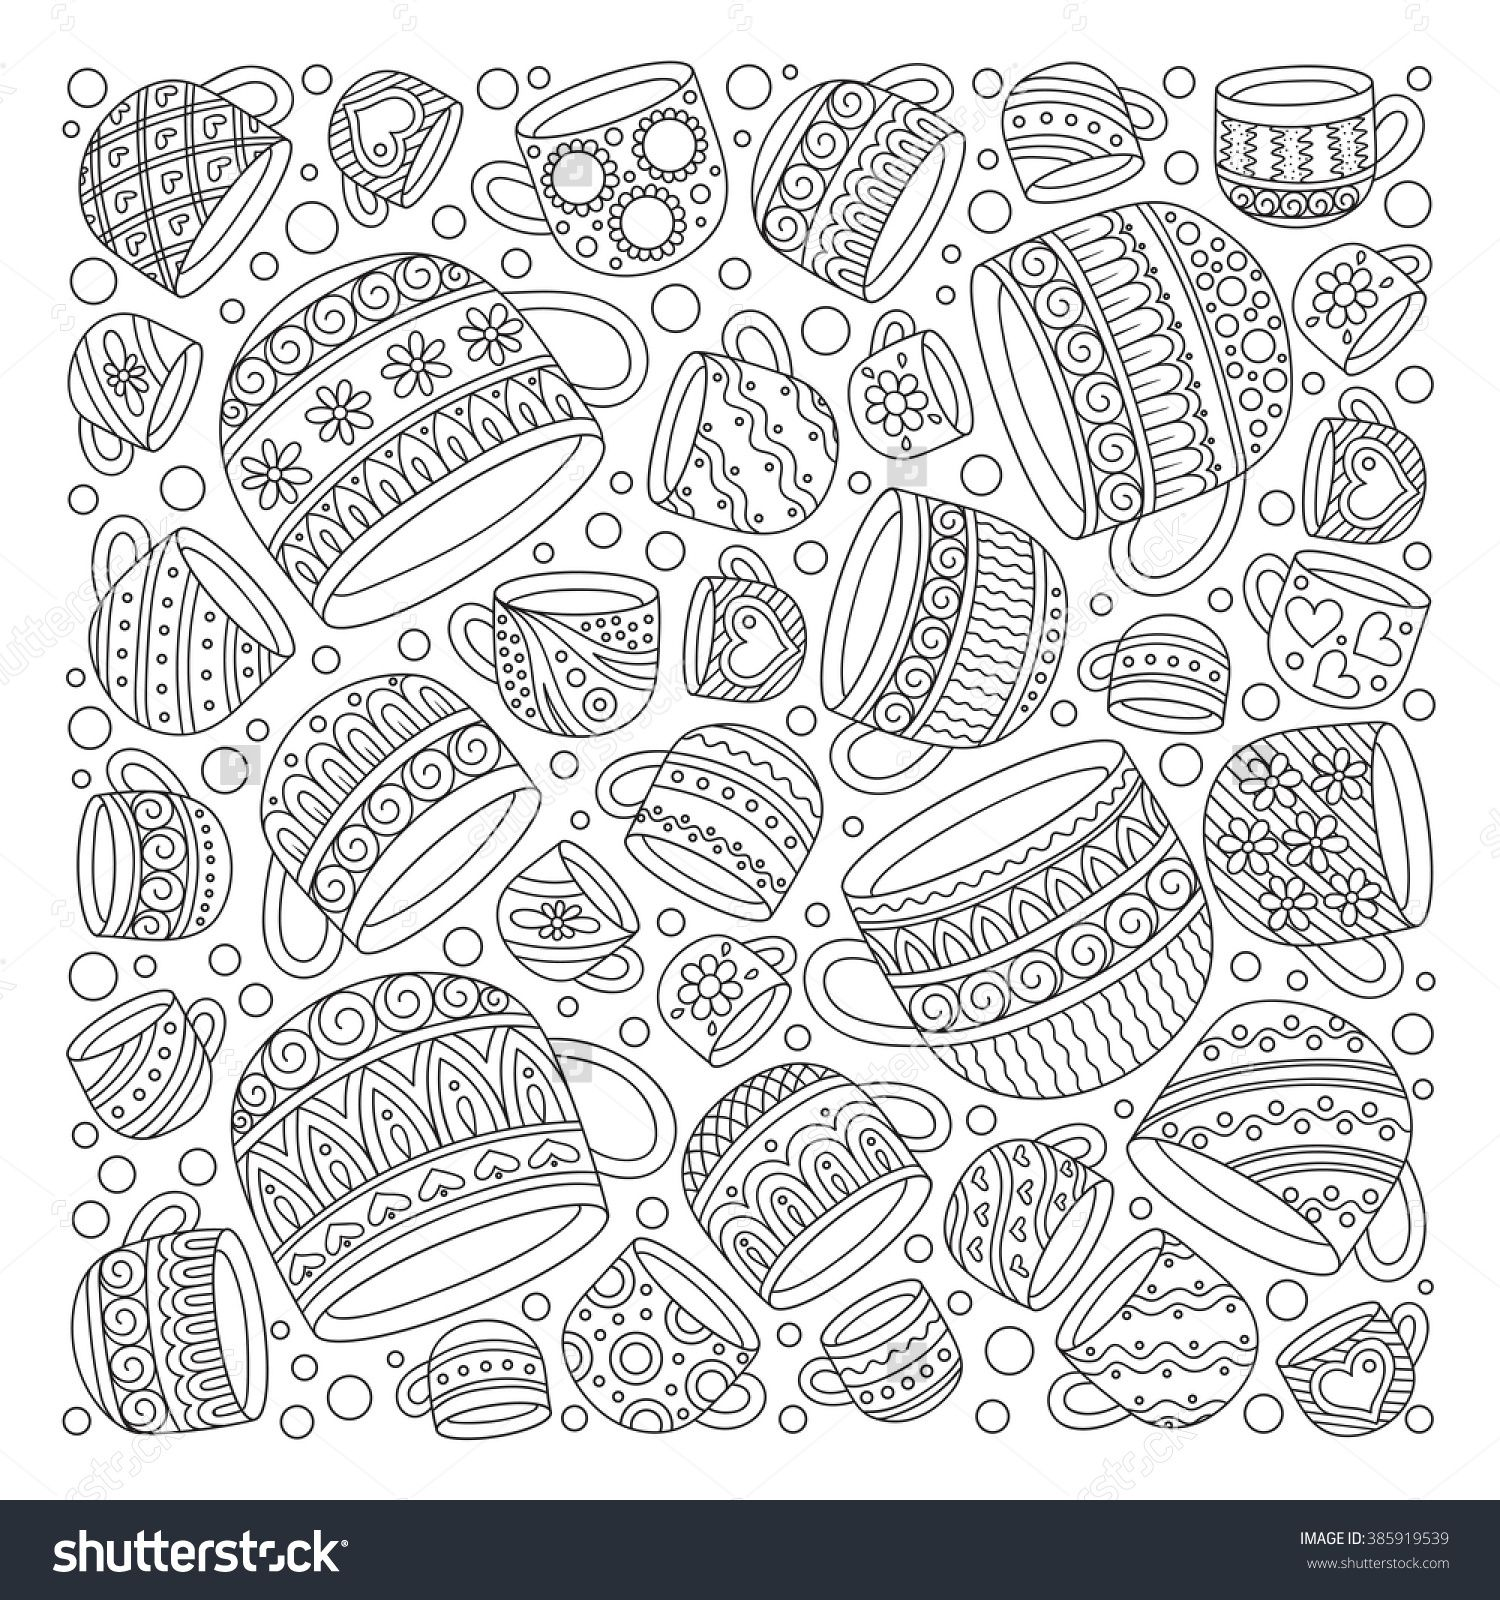 The coloring book project 2nd edition - Coffee And Tea Cups Coloring Page